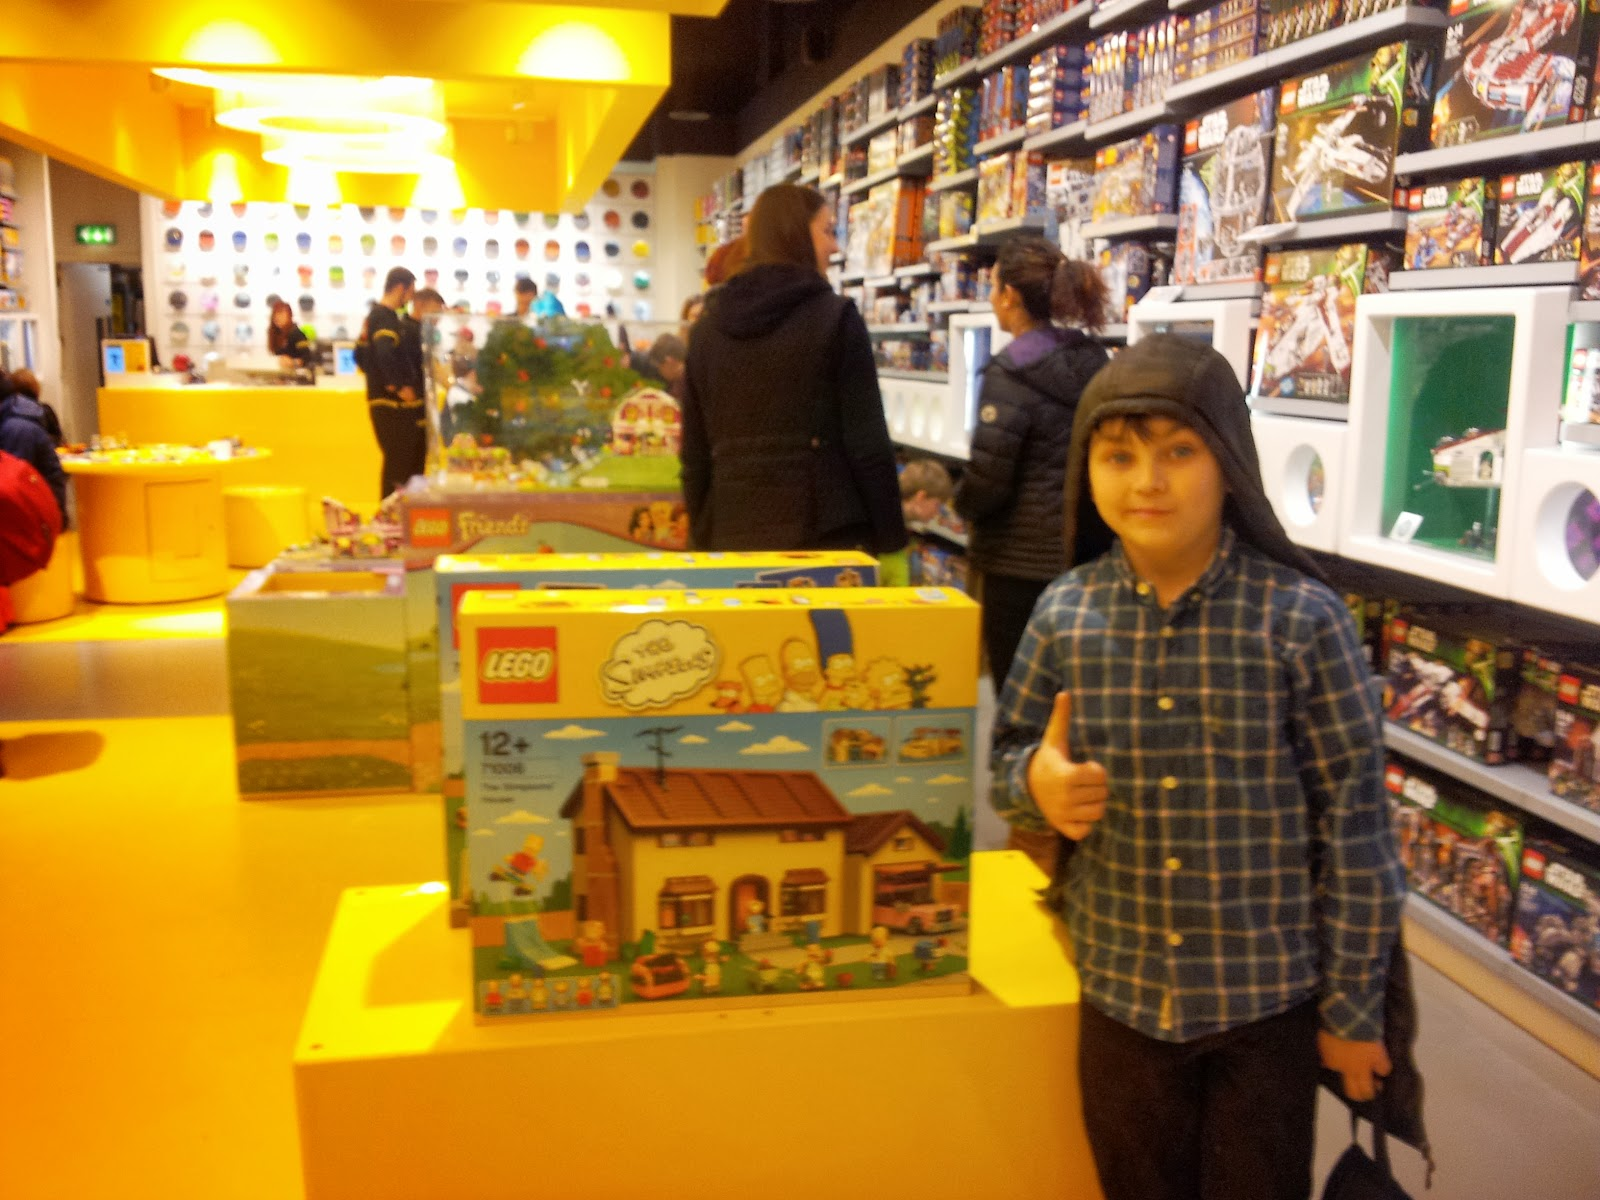 Cardiff Half Term St Davids Centre Wales Lego Stores Pick n Mix Simpsons Lego